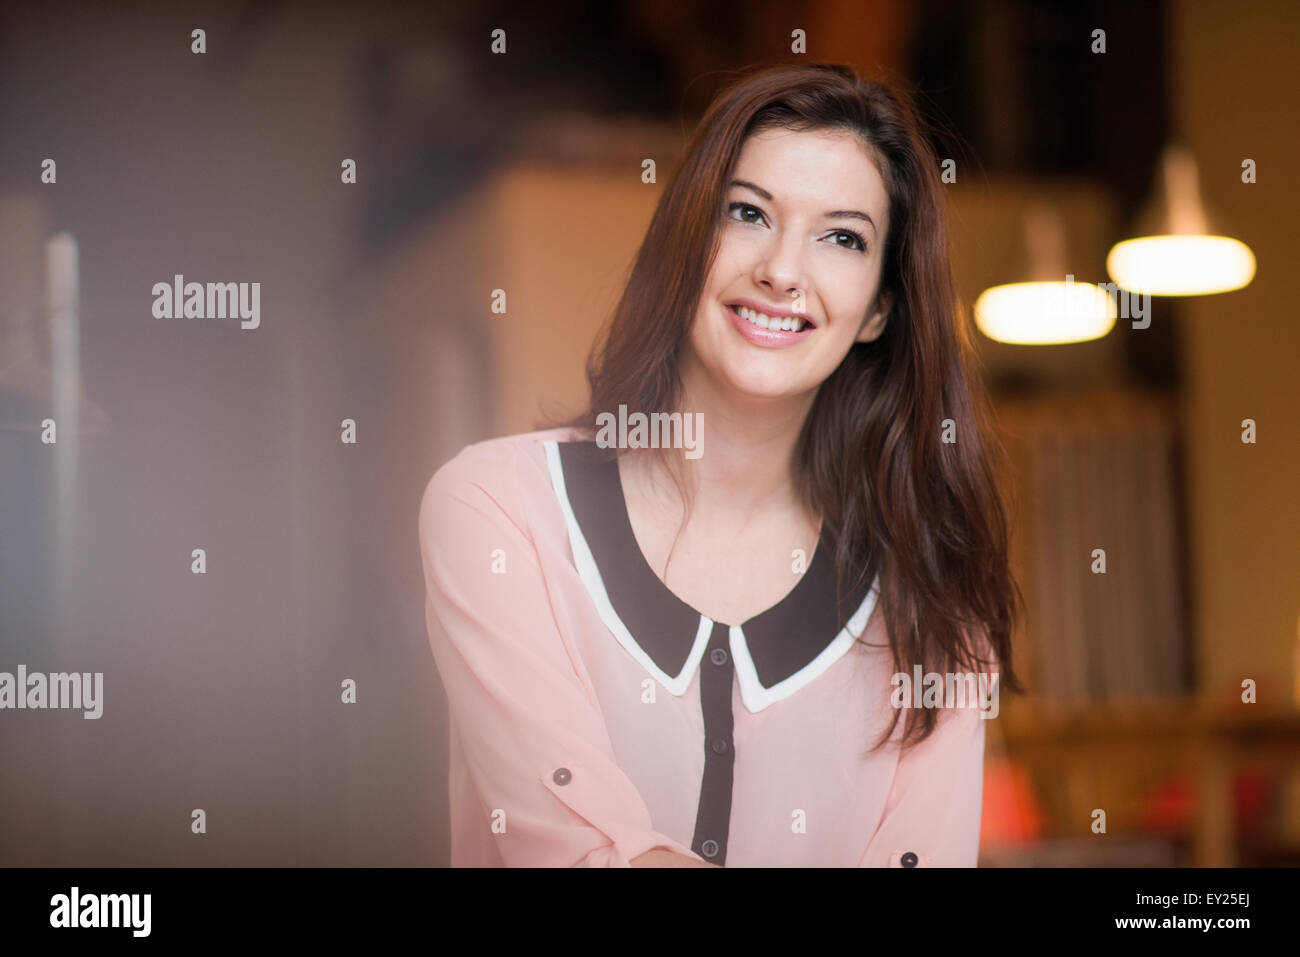 Portrait of young woman with long dark hair, smiling - Stock Image